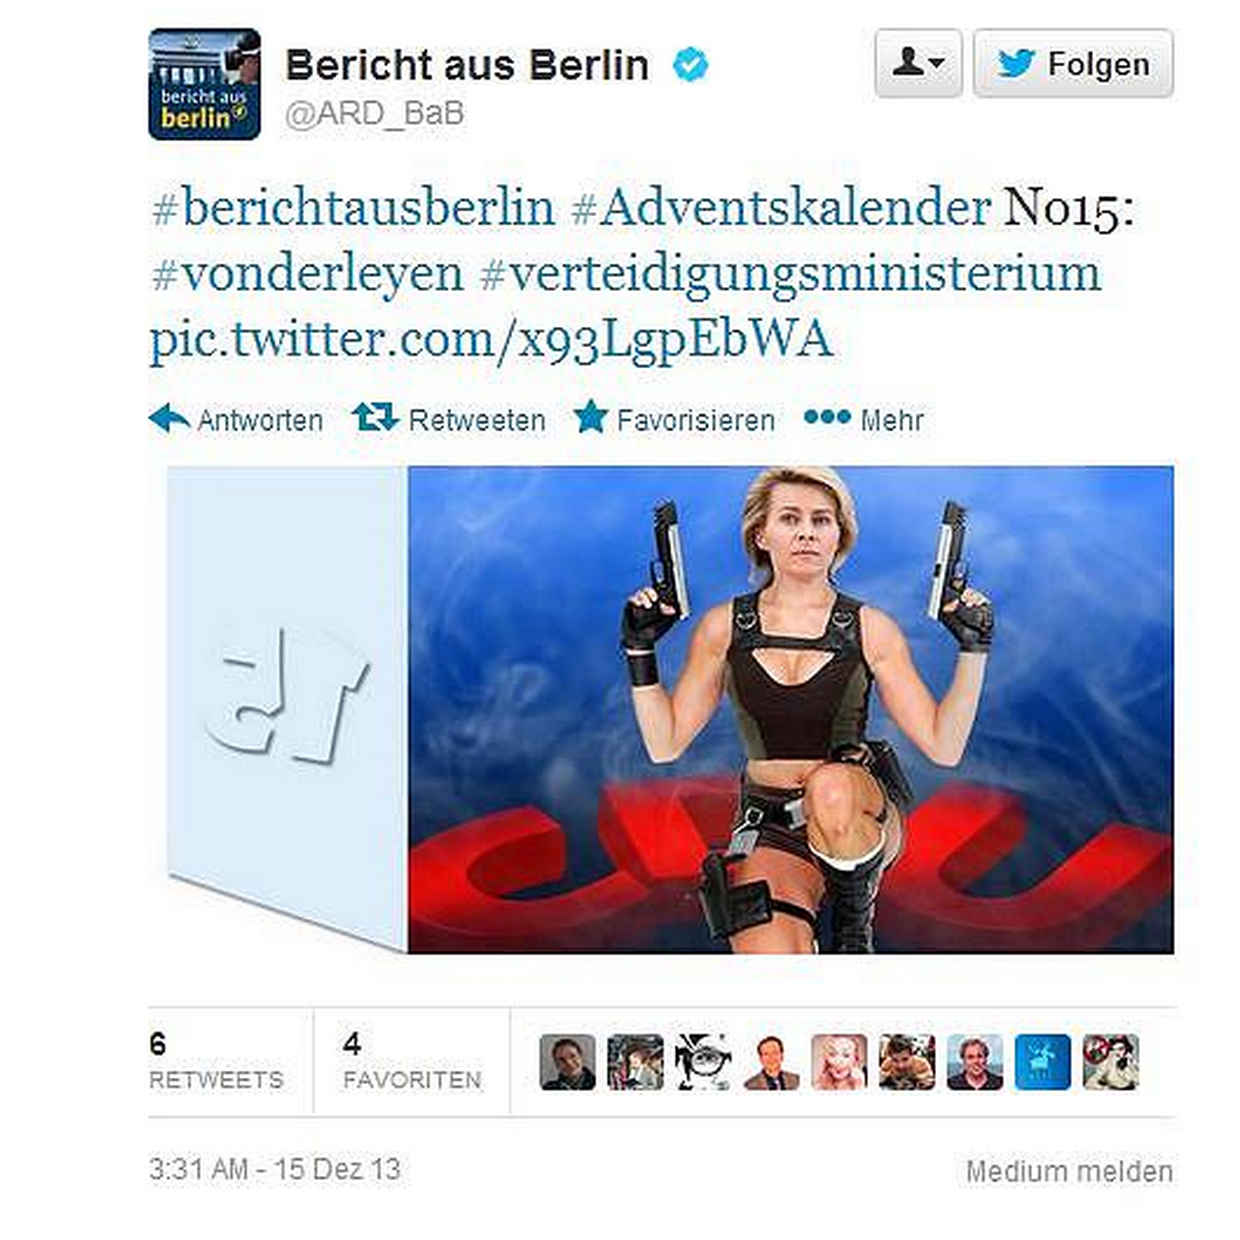 A photo-shopped tweet of Ursula von der Leyen after she was named Germany's first female defense minister in December.